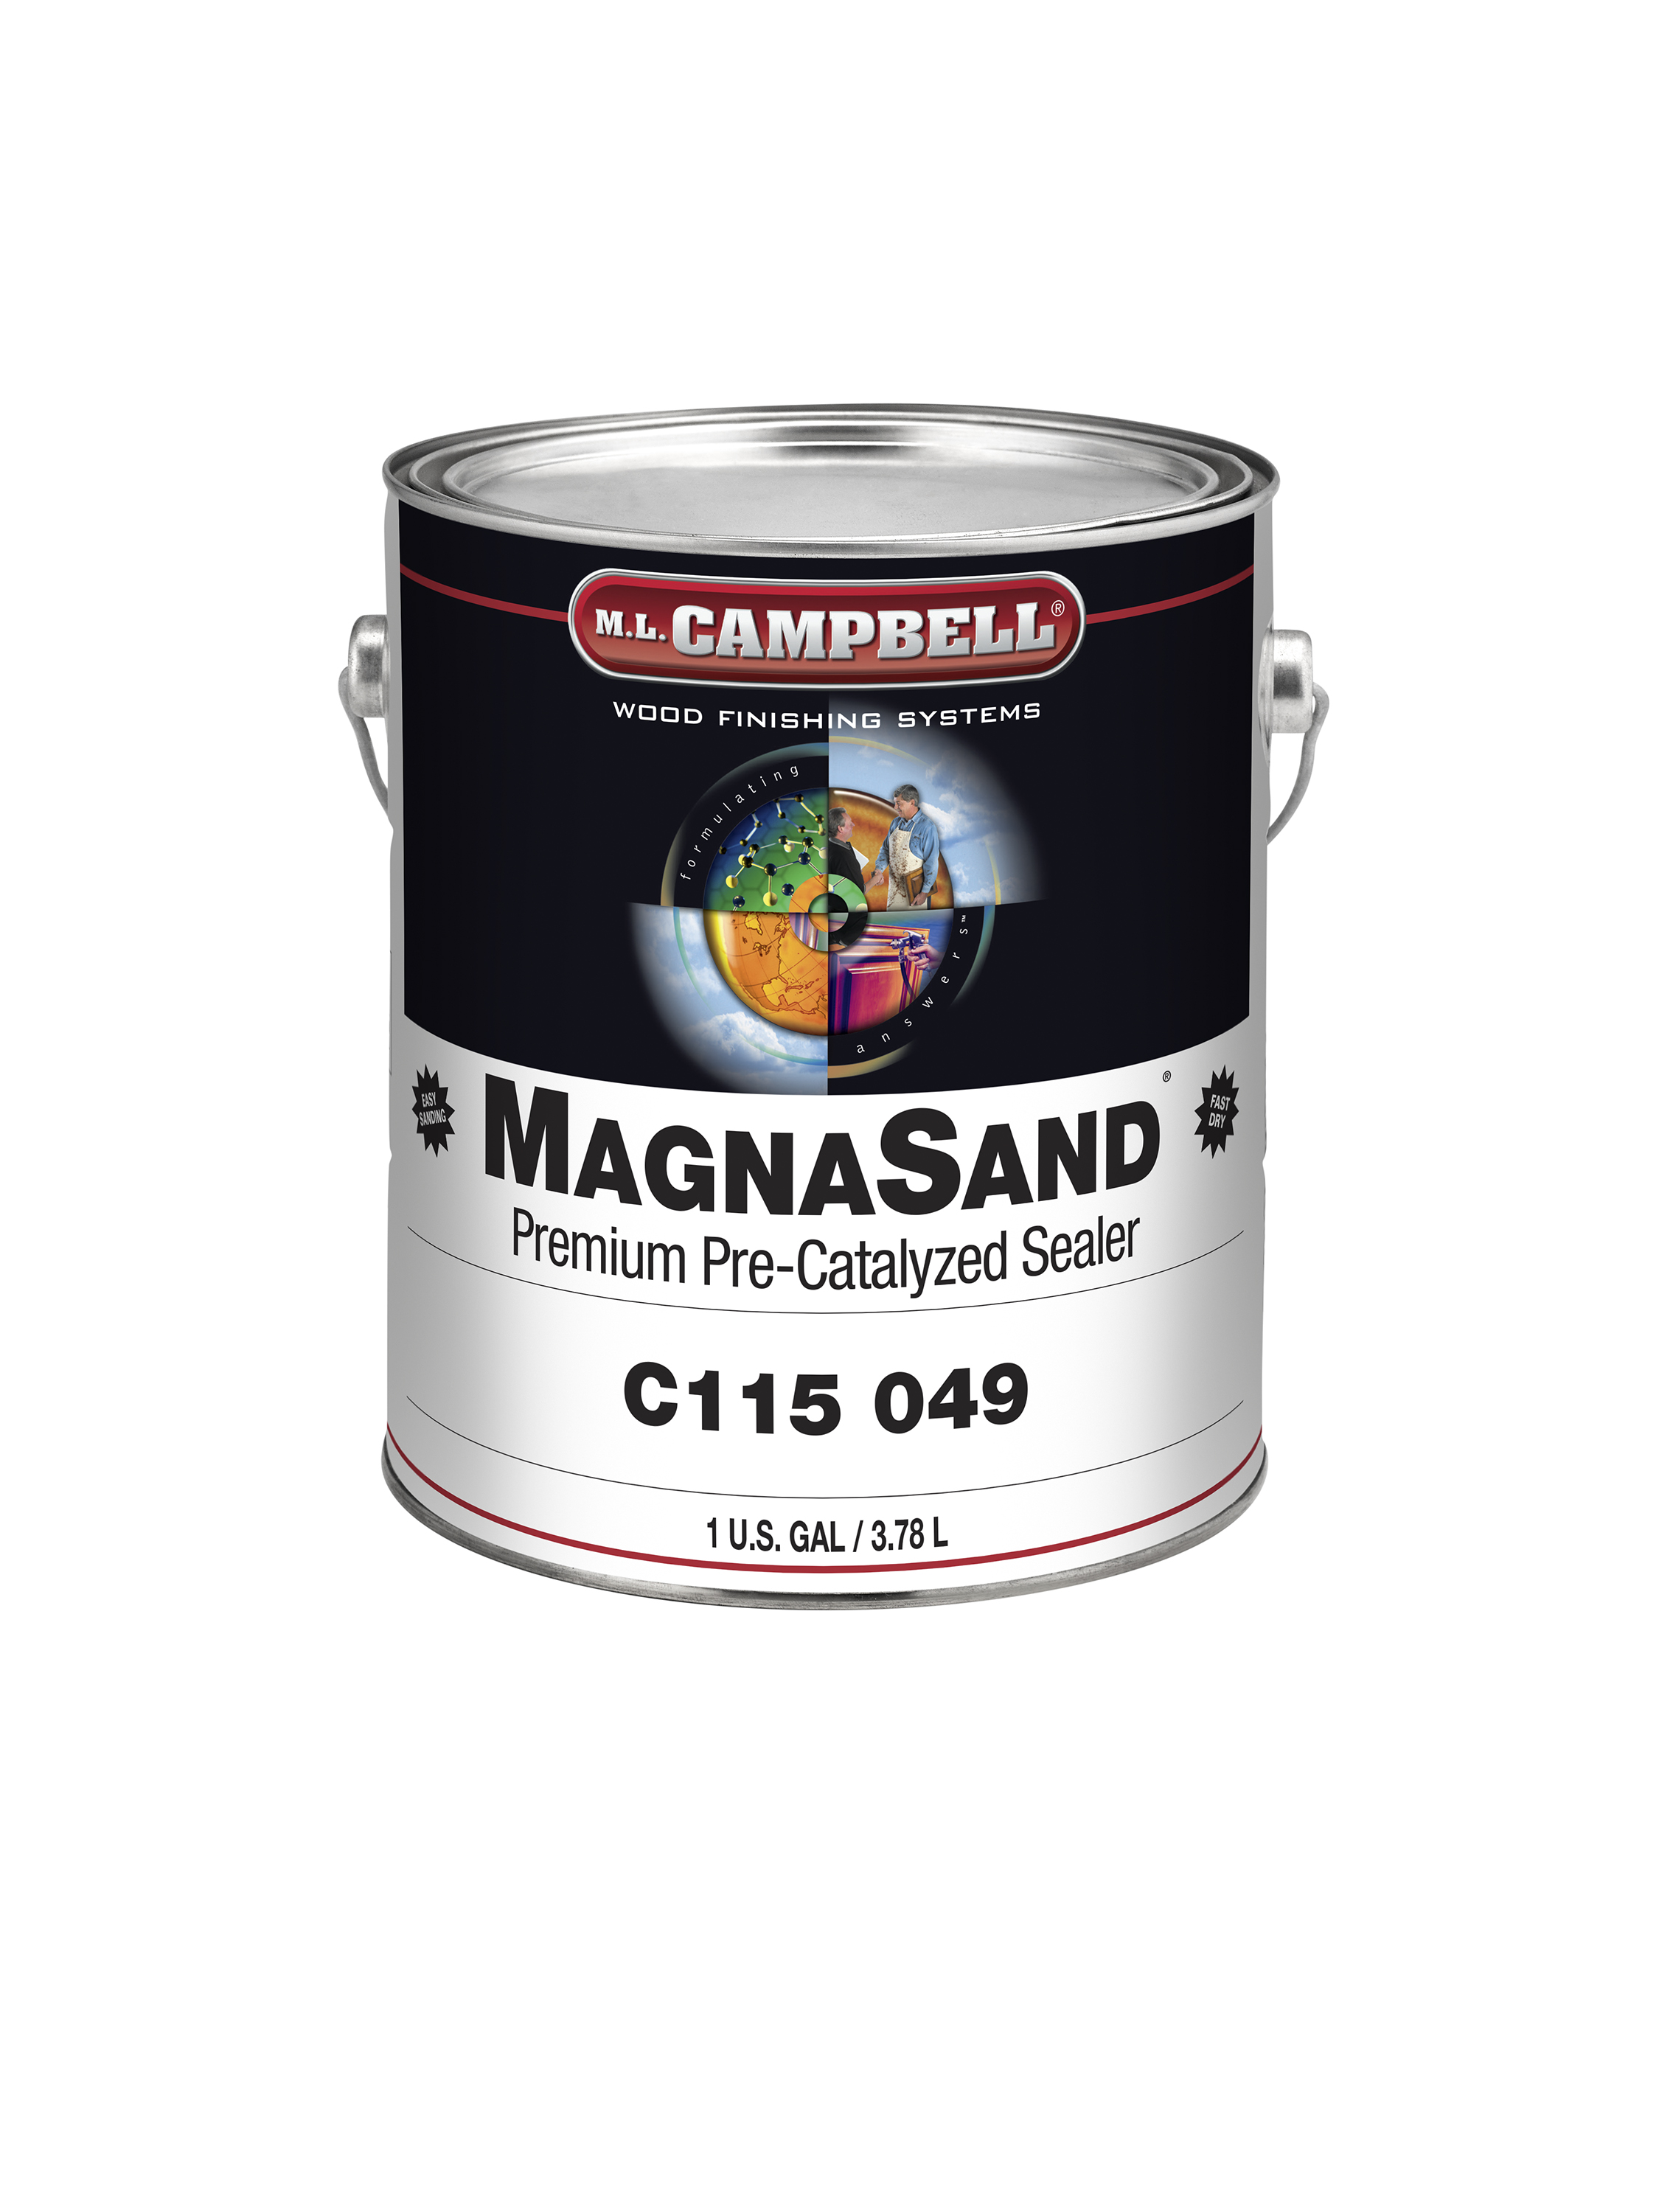 Magnasand sealer m l campbell for Catalyzed lacquer kitchen cabinets